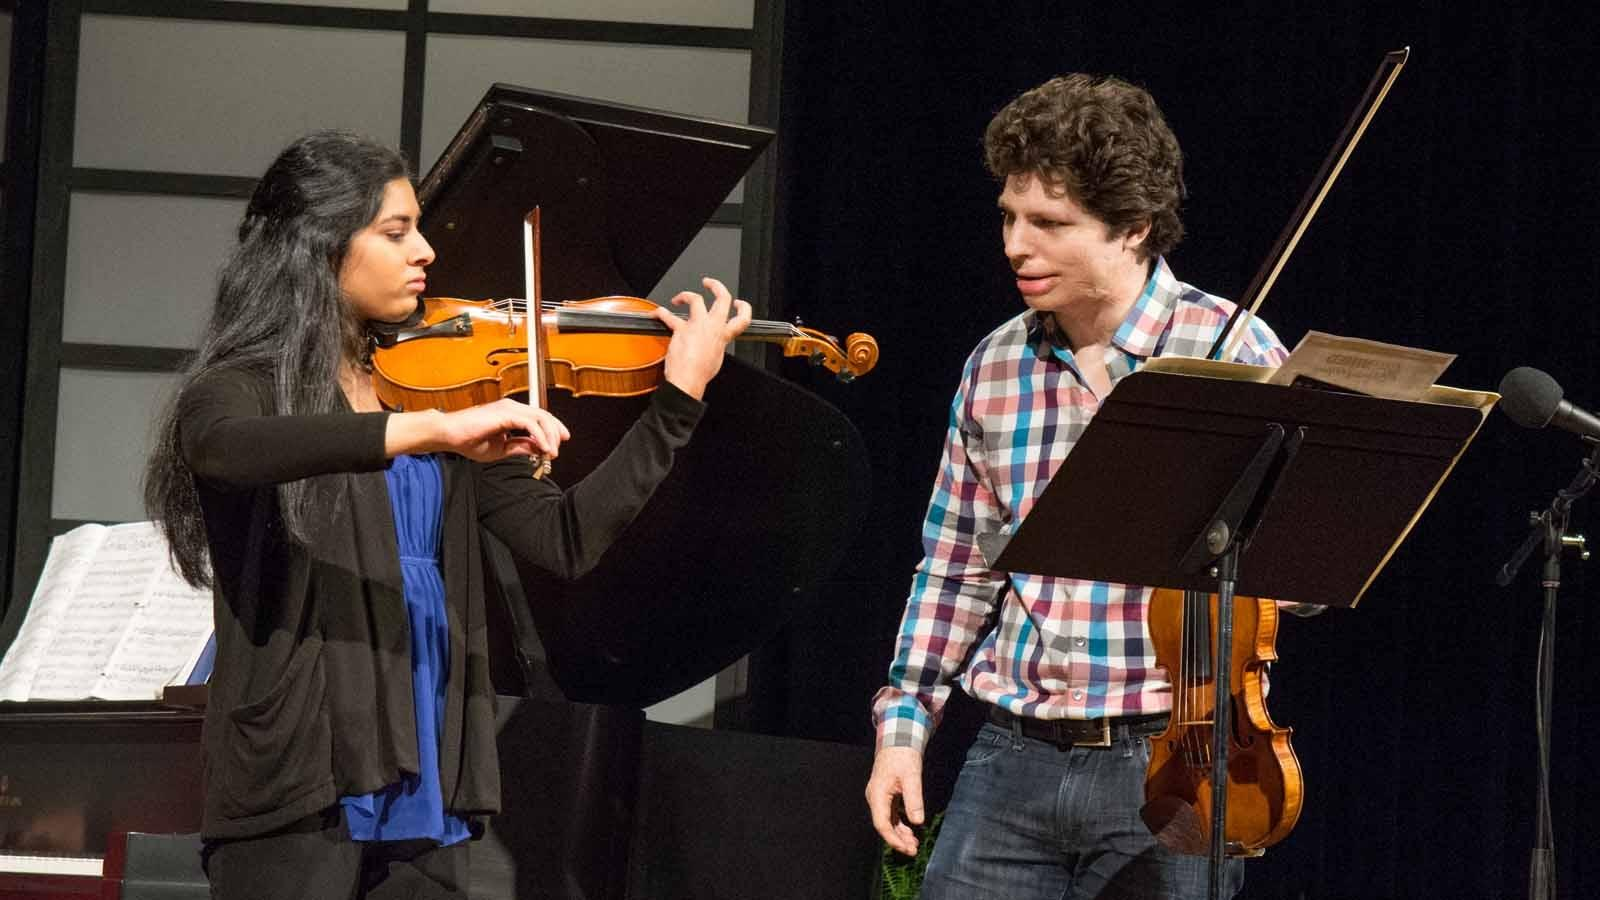 Earlier in the day Augustin Hadelich took part in a masterclass working with Buffalo Suzuki Strings student Arya Pindapralu.